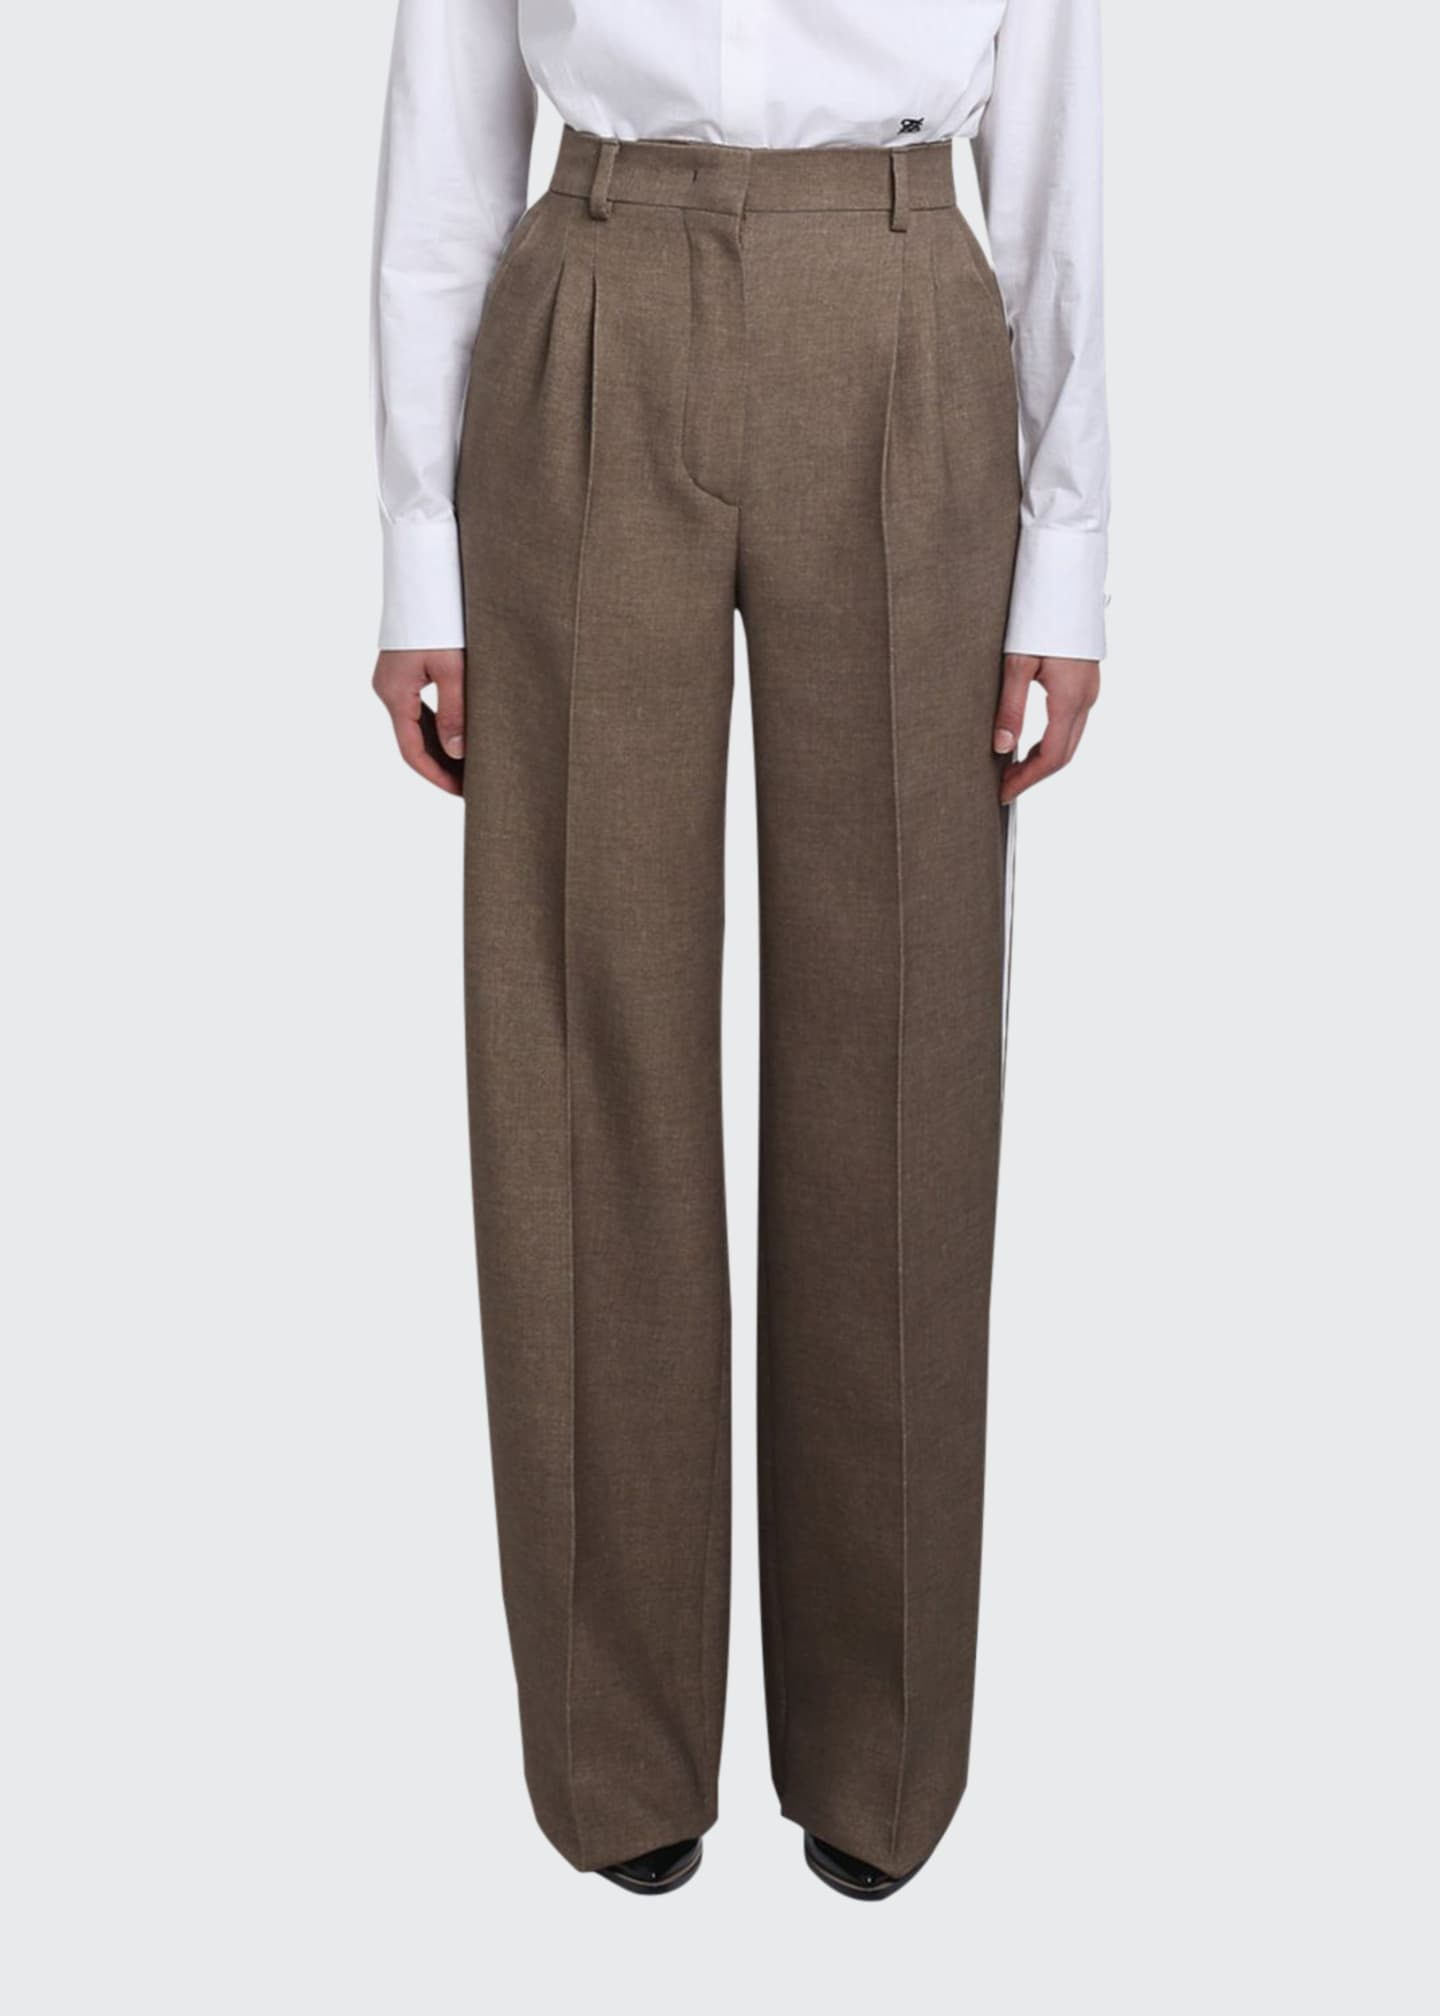 Fendi Wool-Silk Wide-Leg Pants w/ Leather Tuxedo Stripe